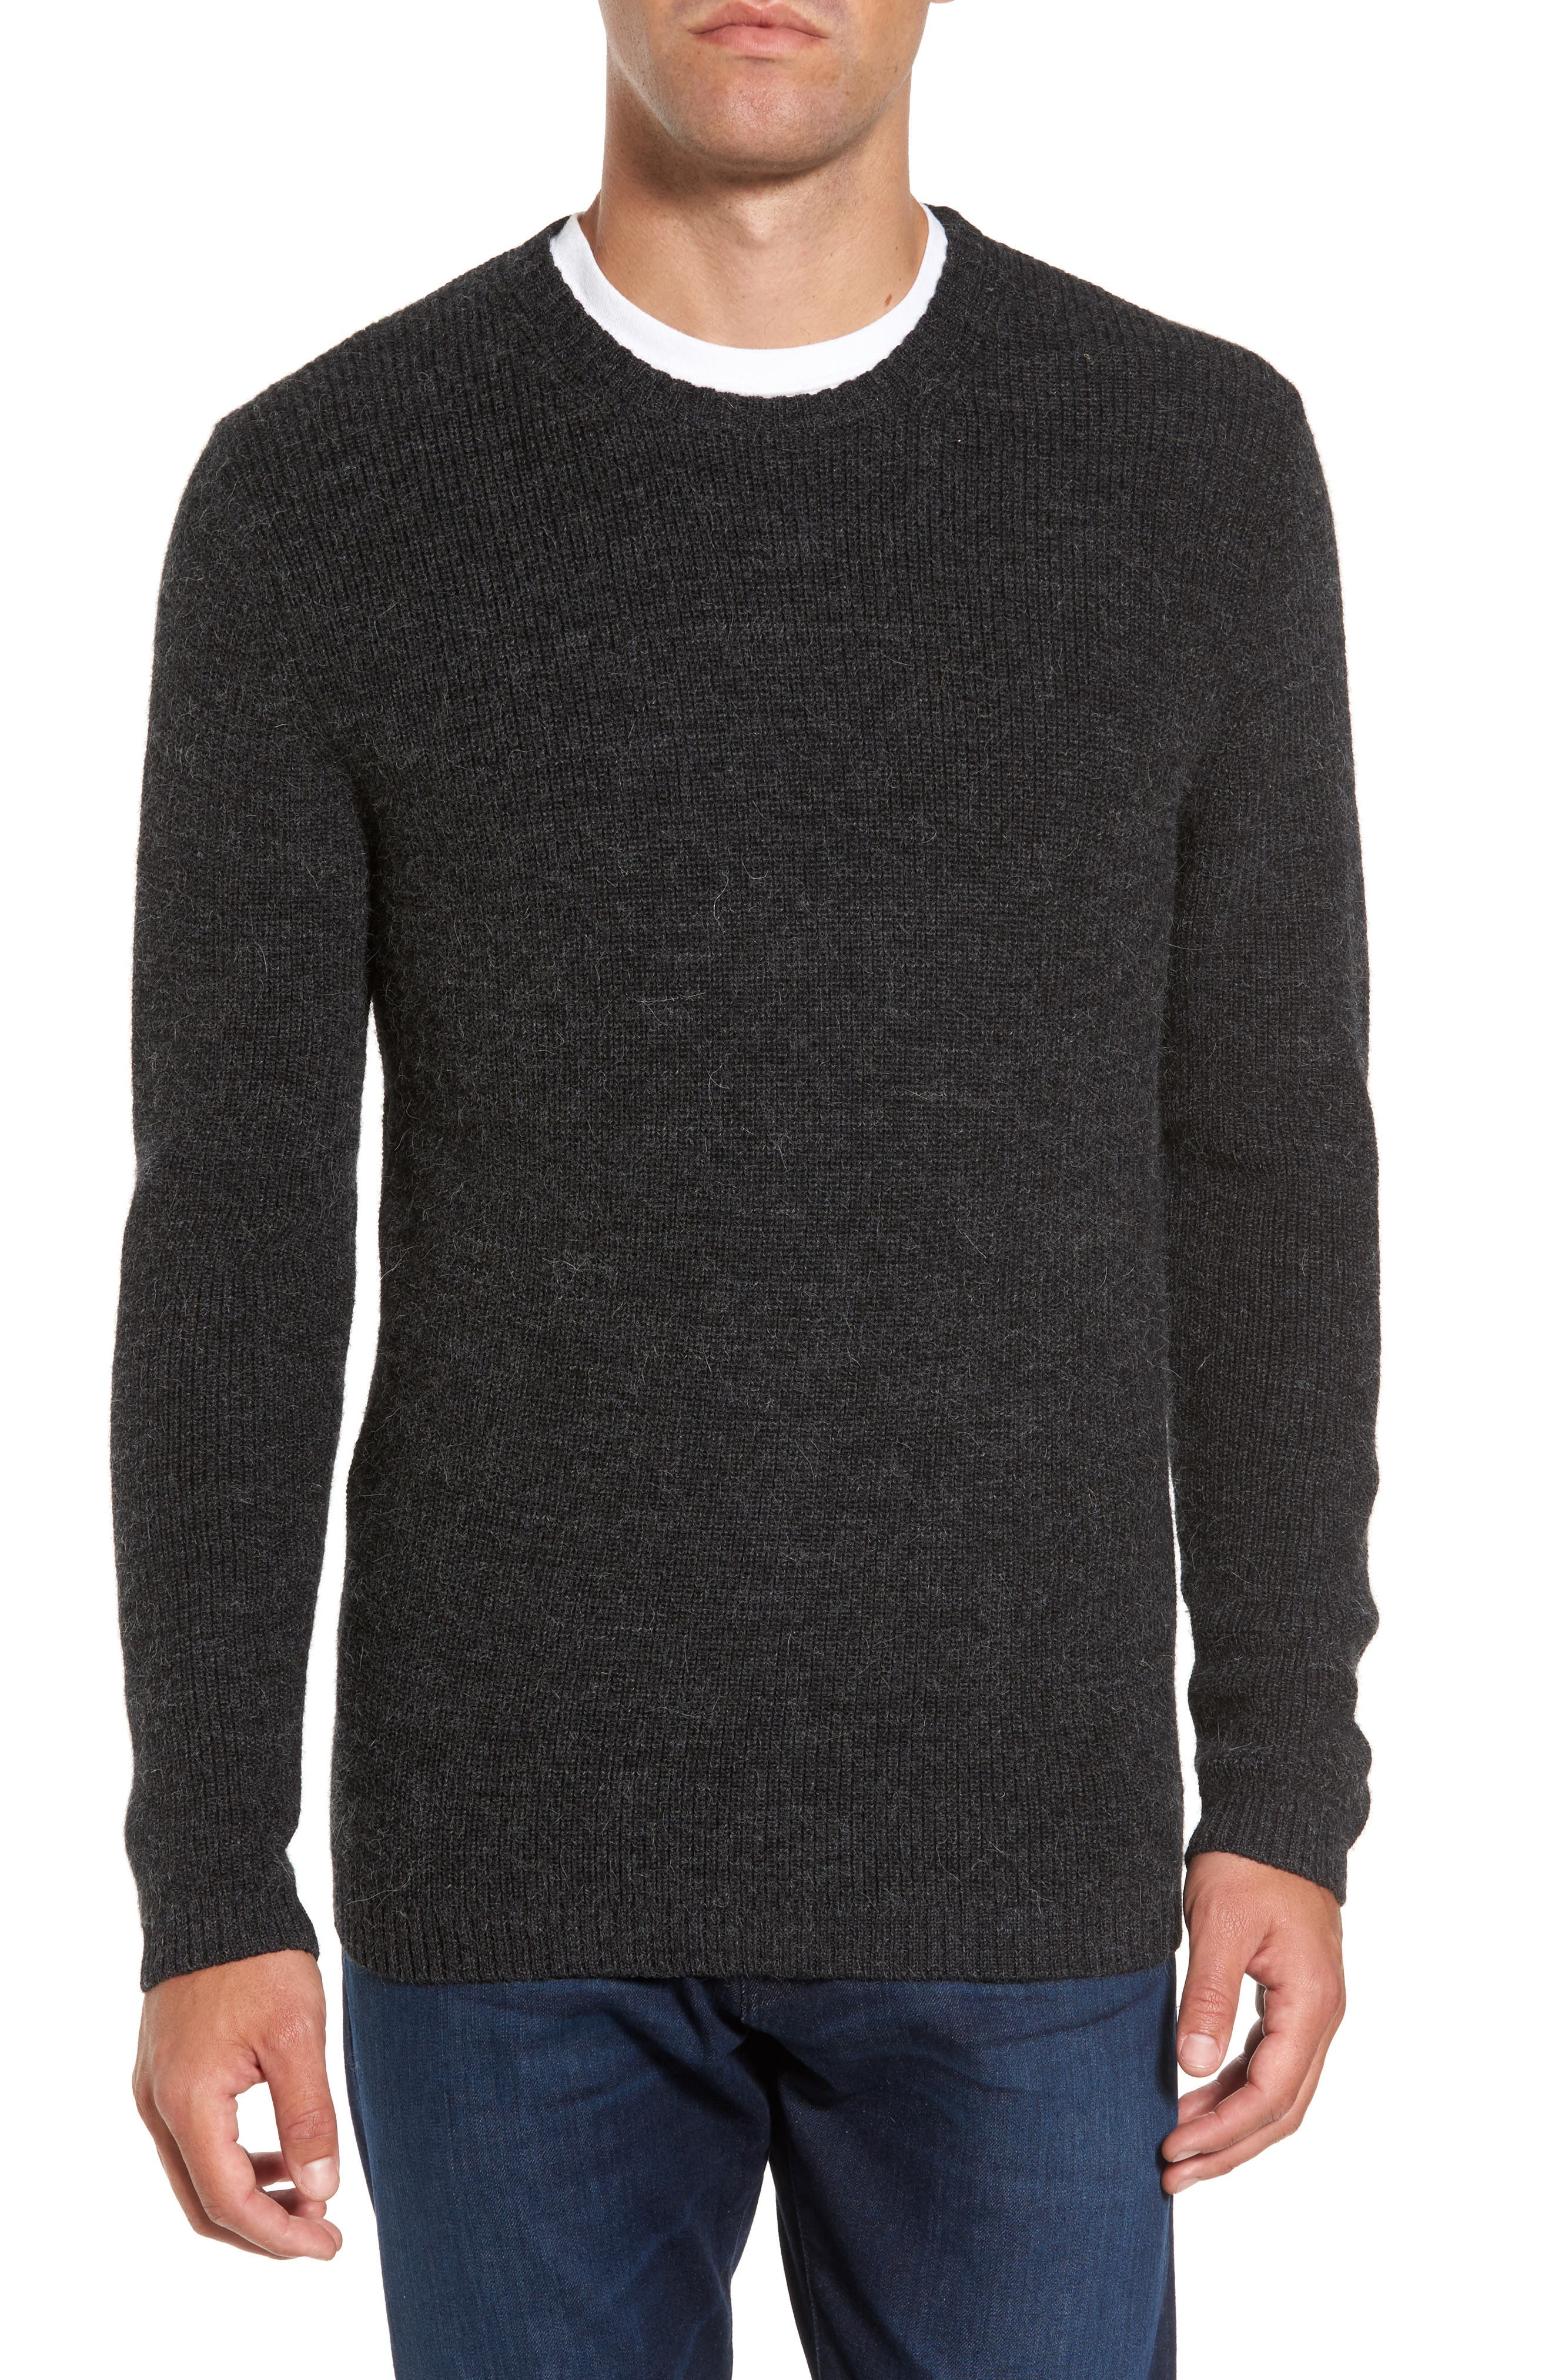 Whalers Bay Merino Wool Blend Sweater,                         Main,                         color, Onyx